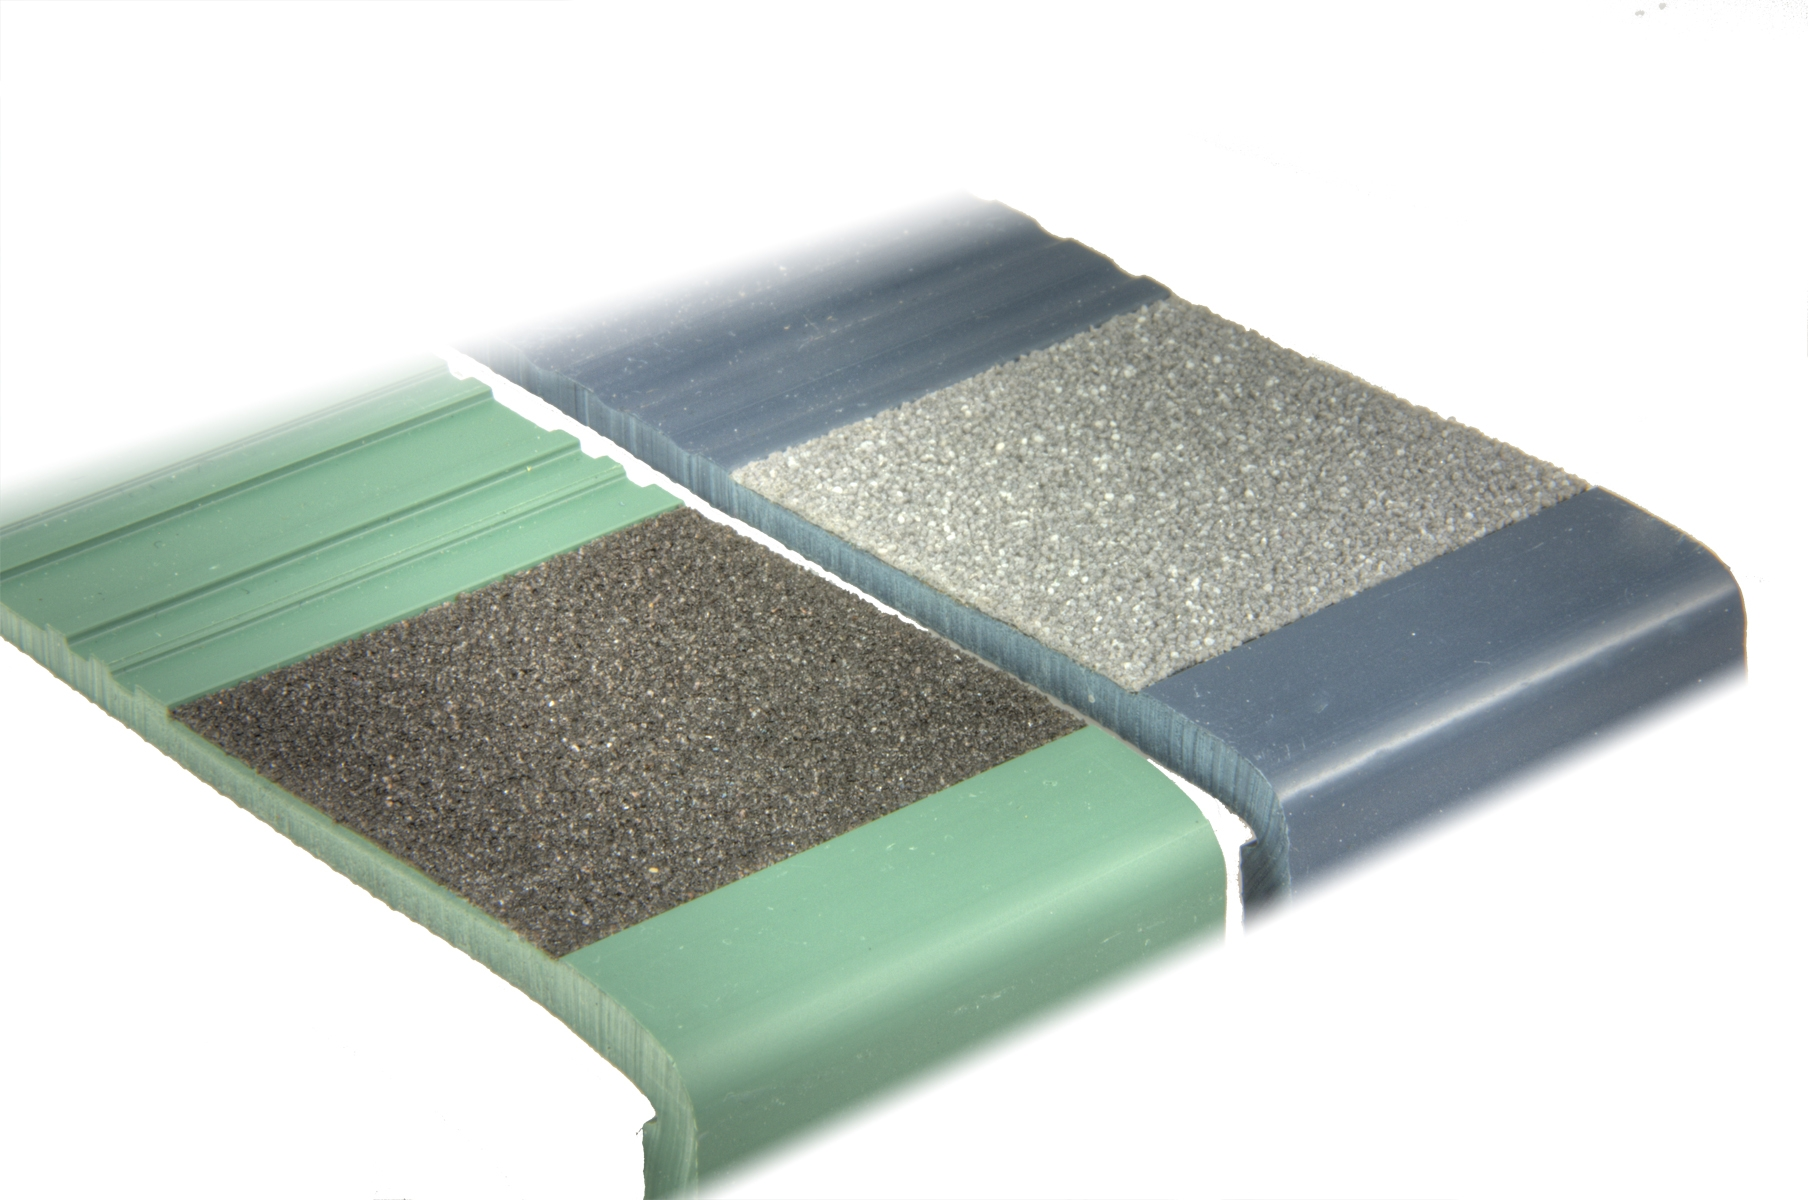 Expanded Line Of Grit Tape From Martinson Nicholls Selected For Skid Resistant Stair Treads (Image 7 of 15)